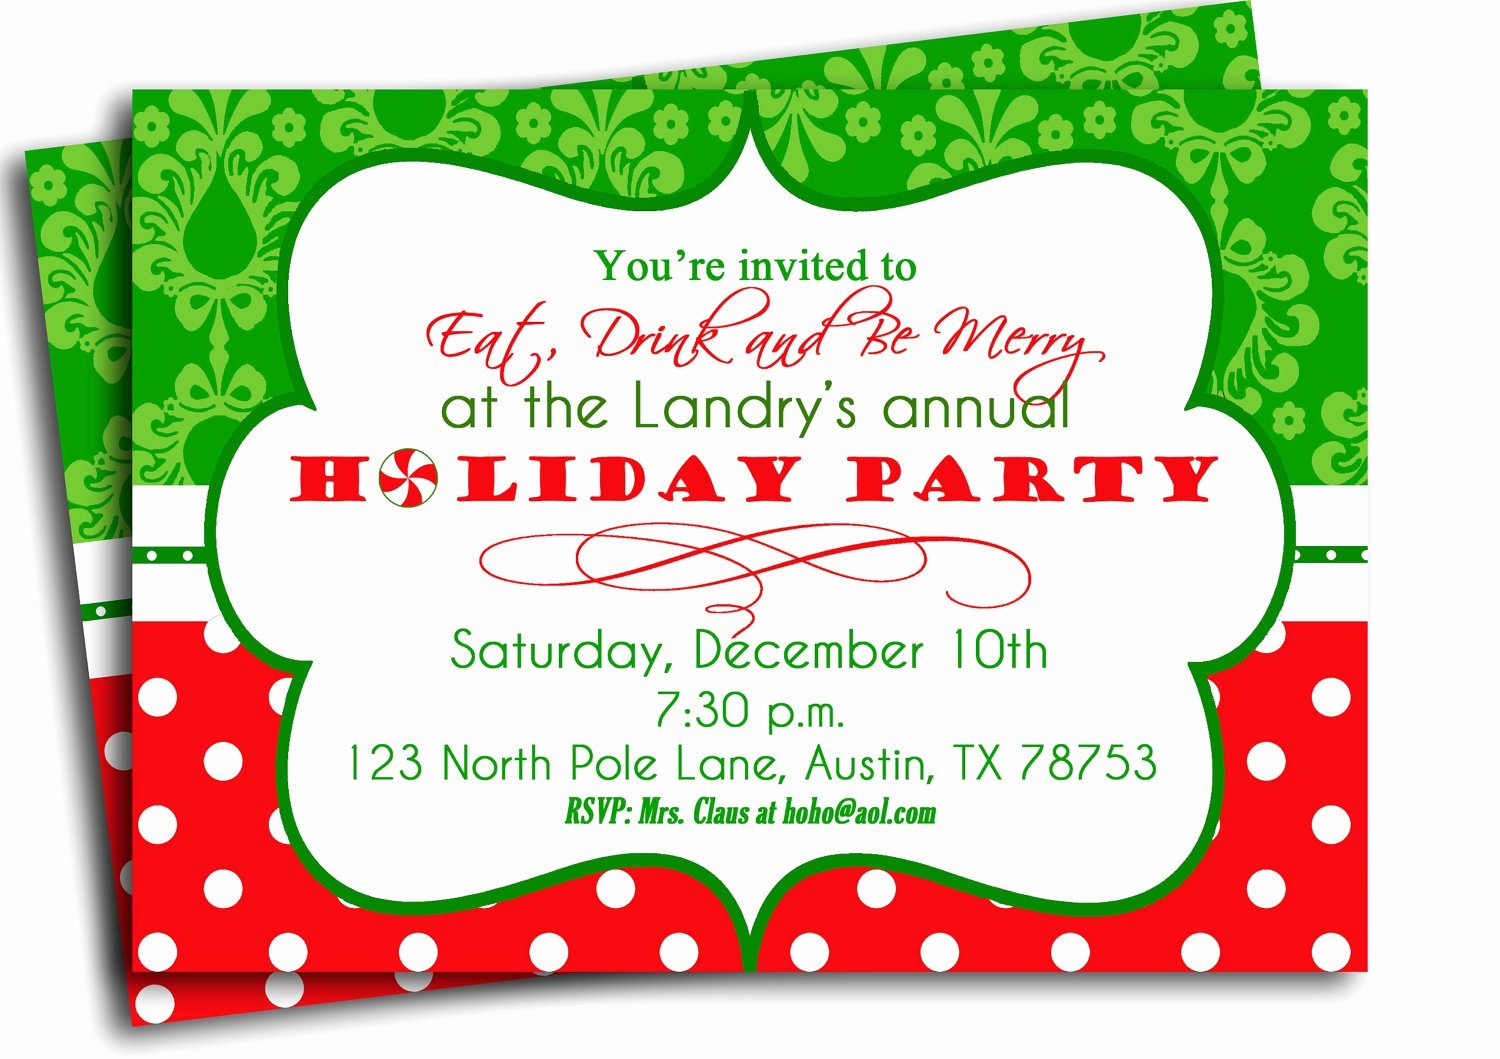 Holiday Party Invite Template Inspirational Christmas Party Invitation Printable Traditional Holiday